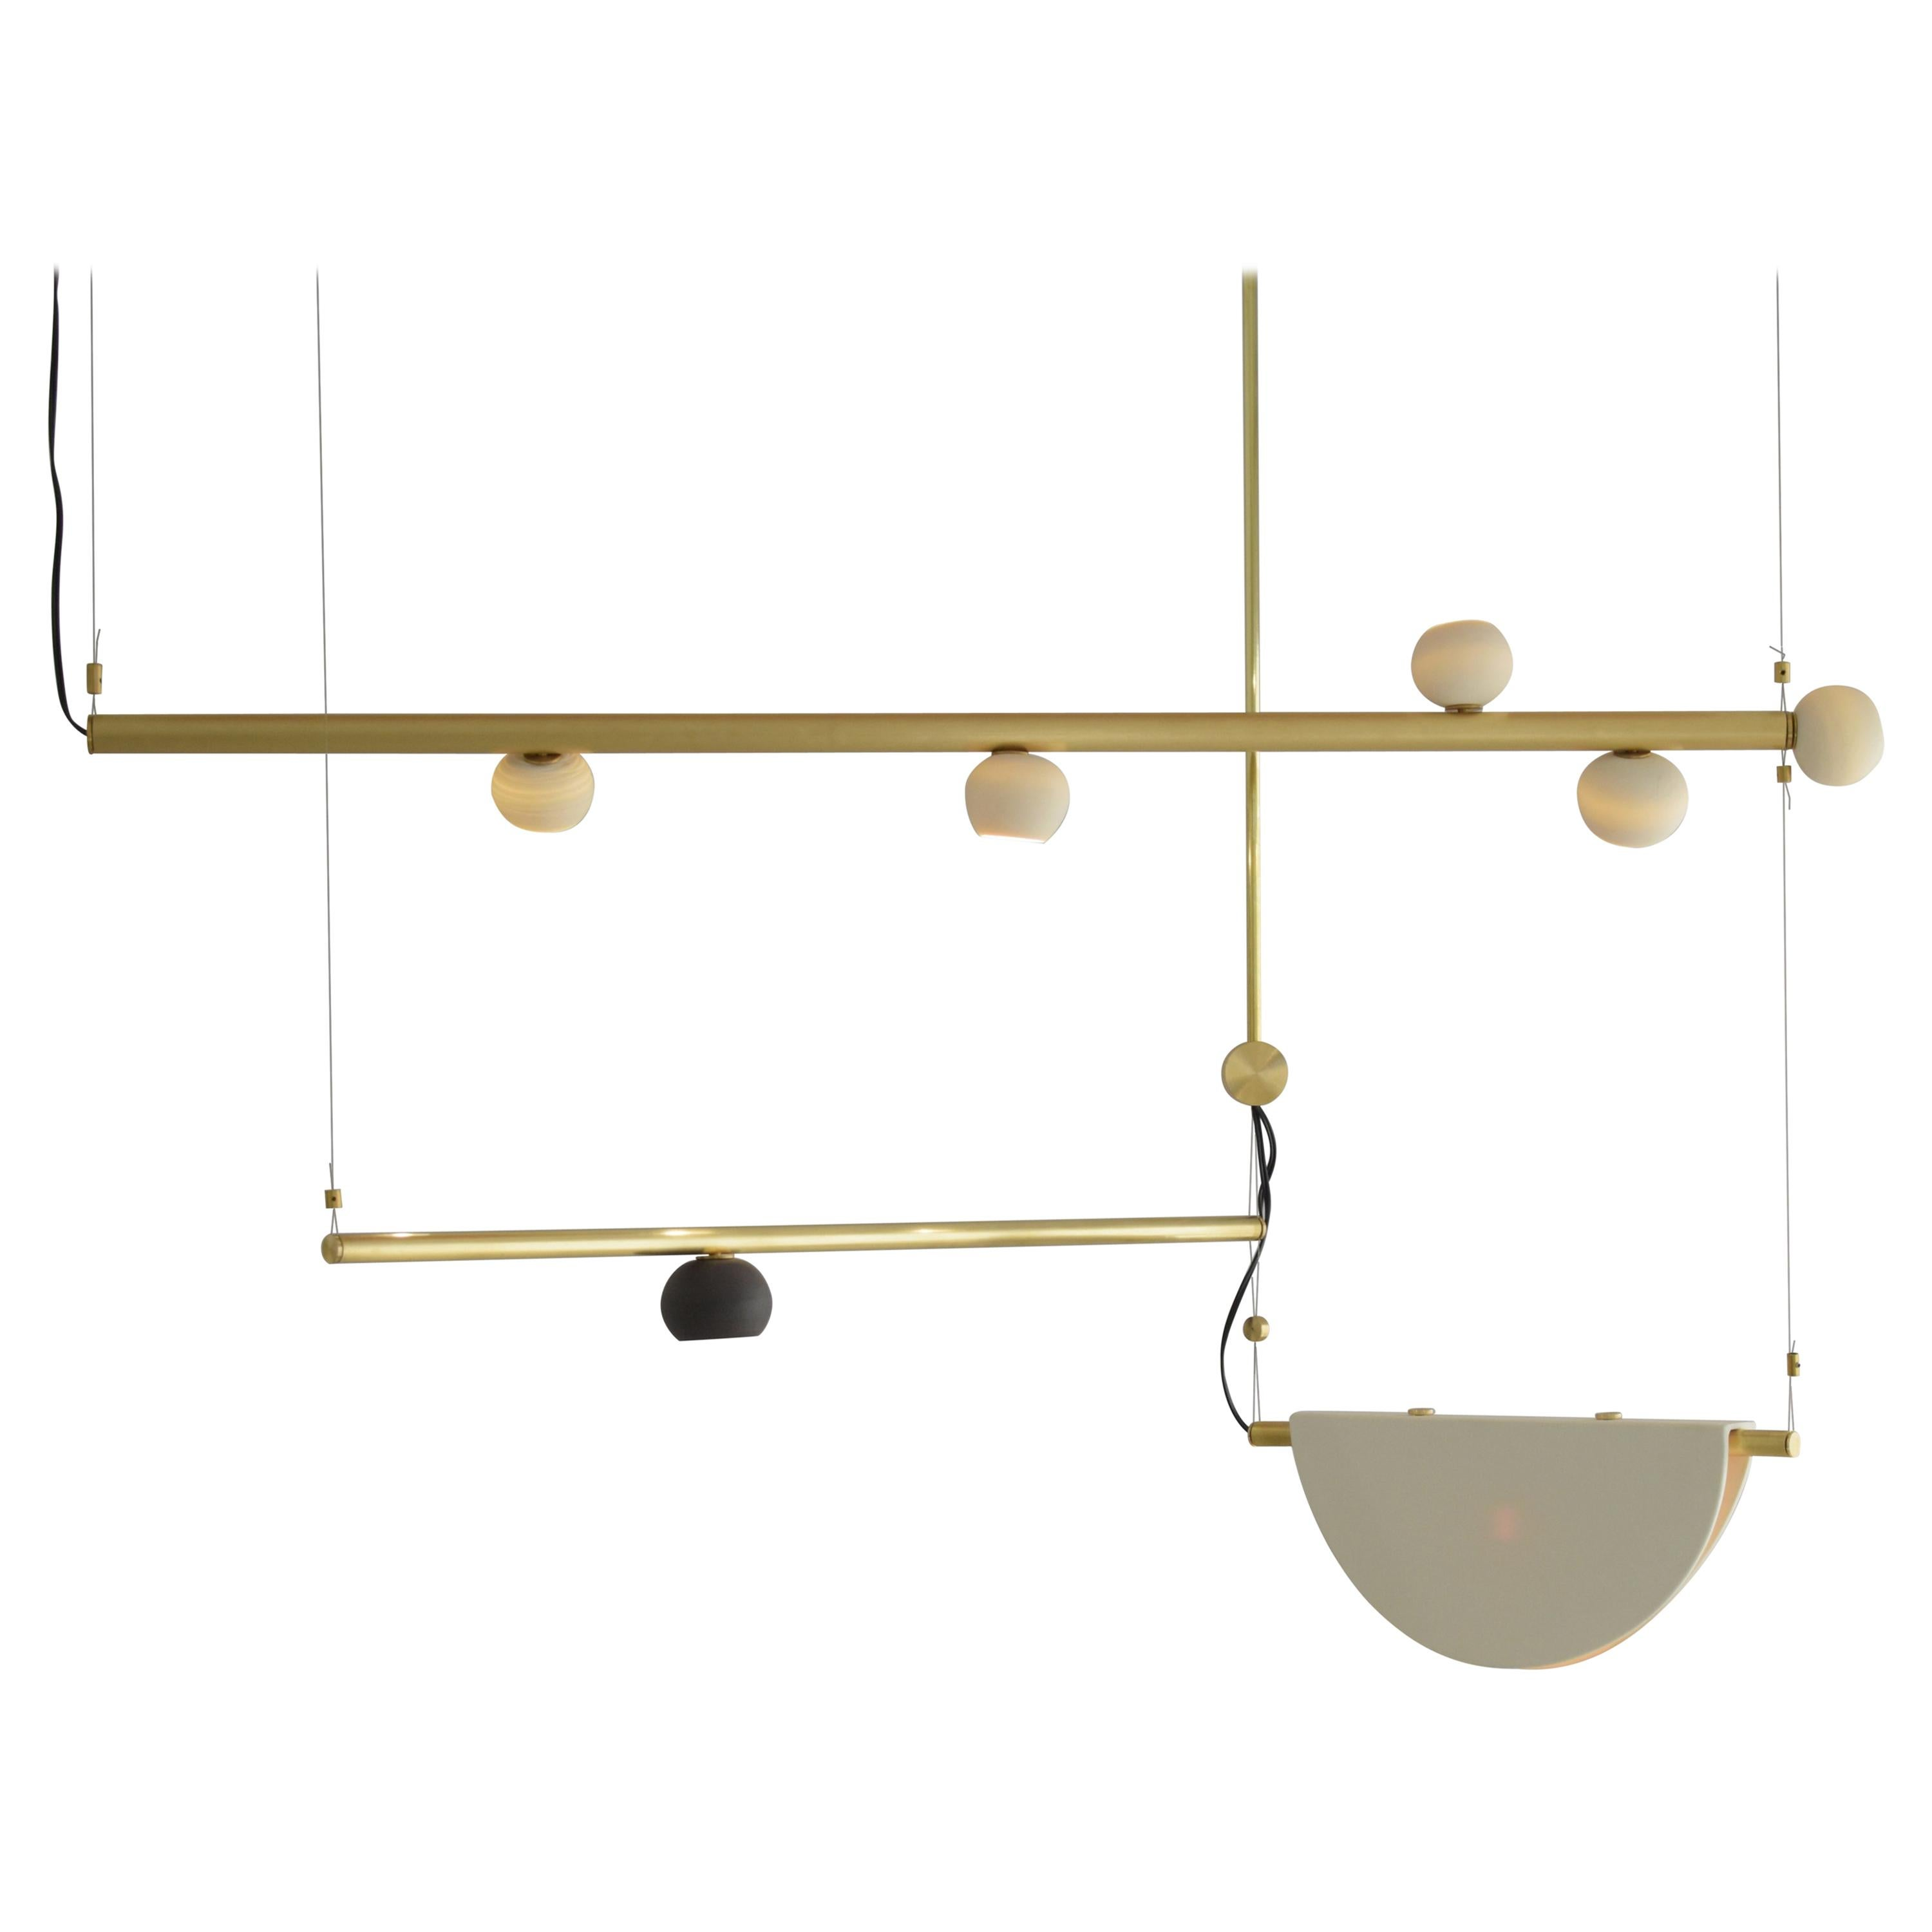 Brass Sculpted Light Suspension, My Queen III, Signed Periclis Frementitis